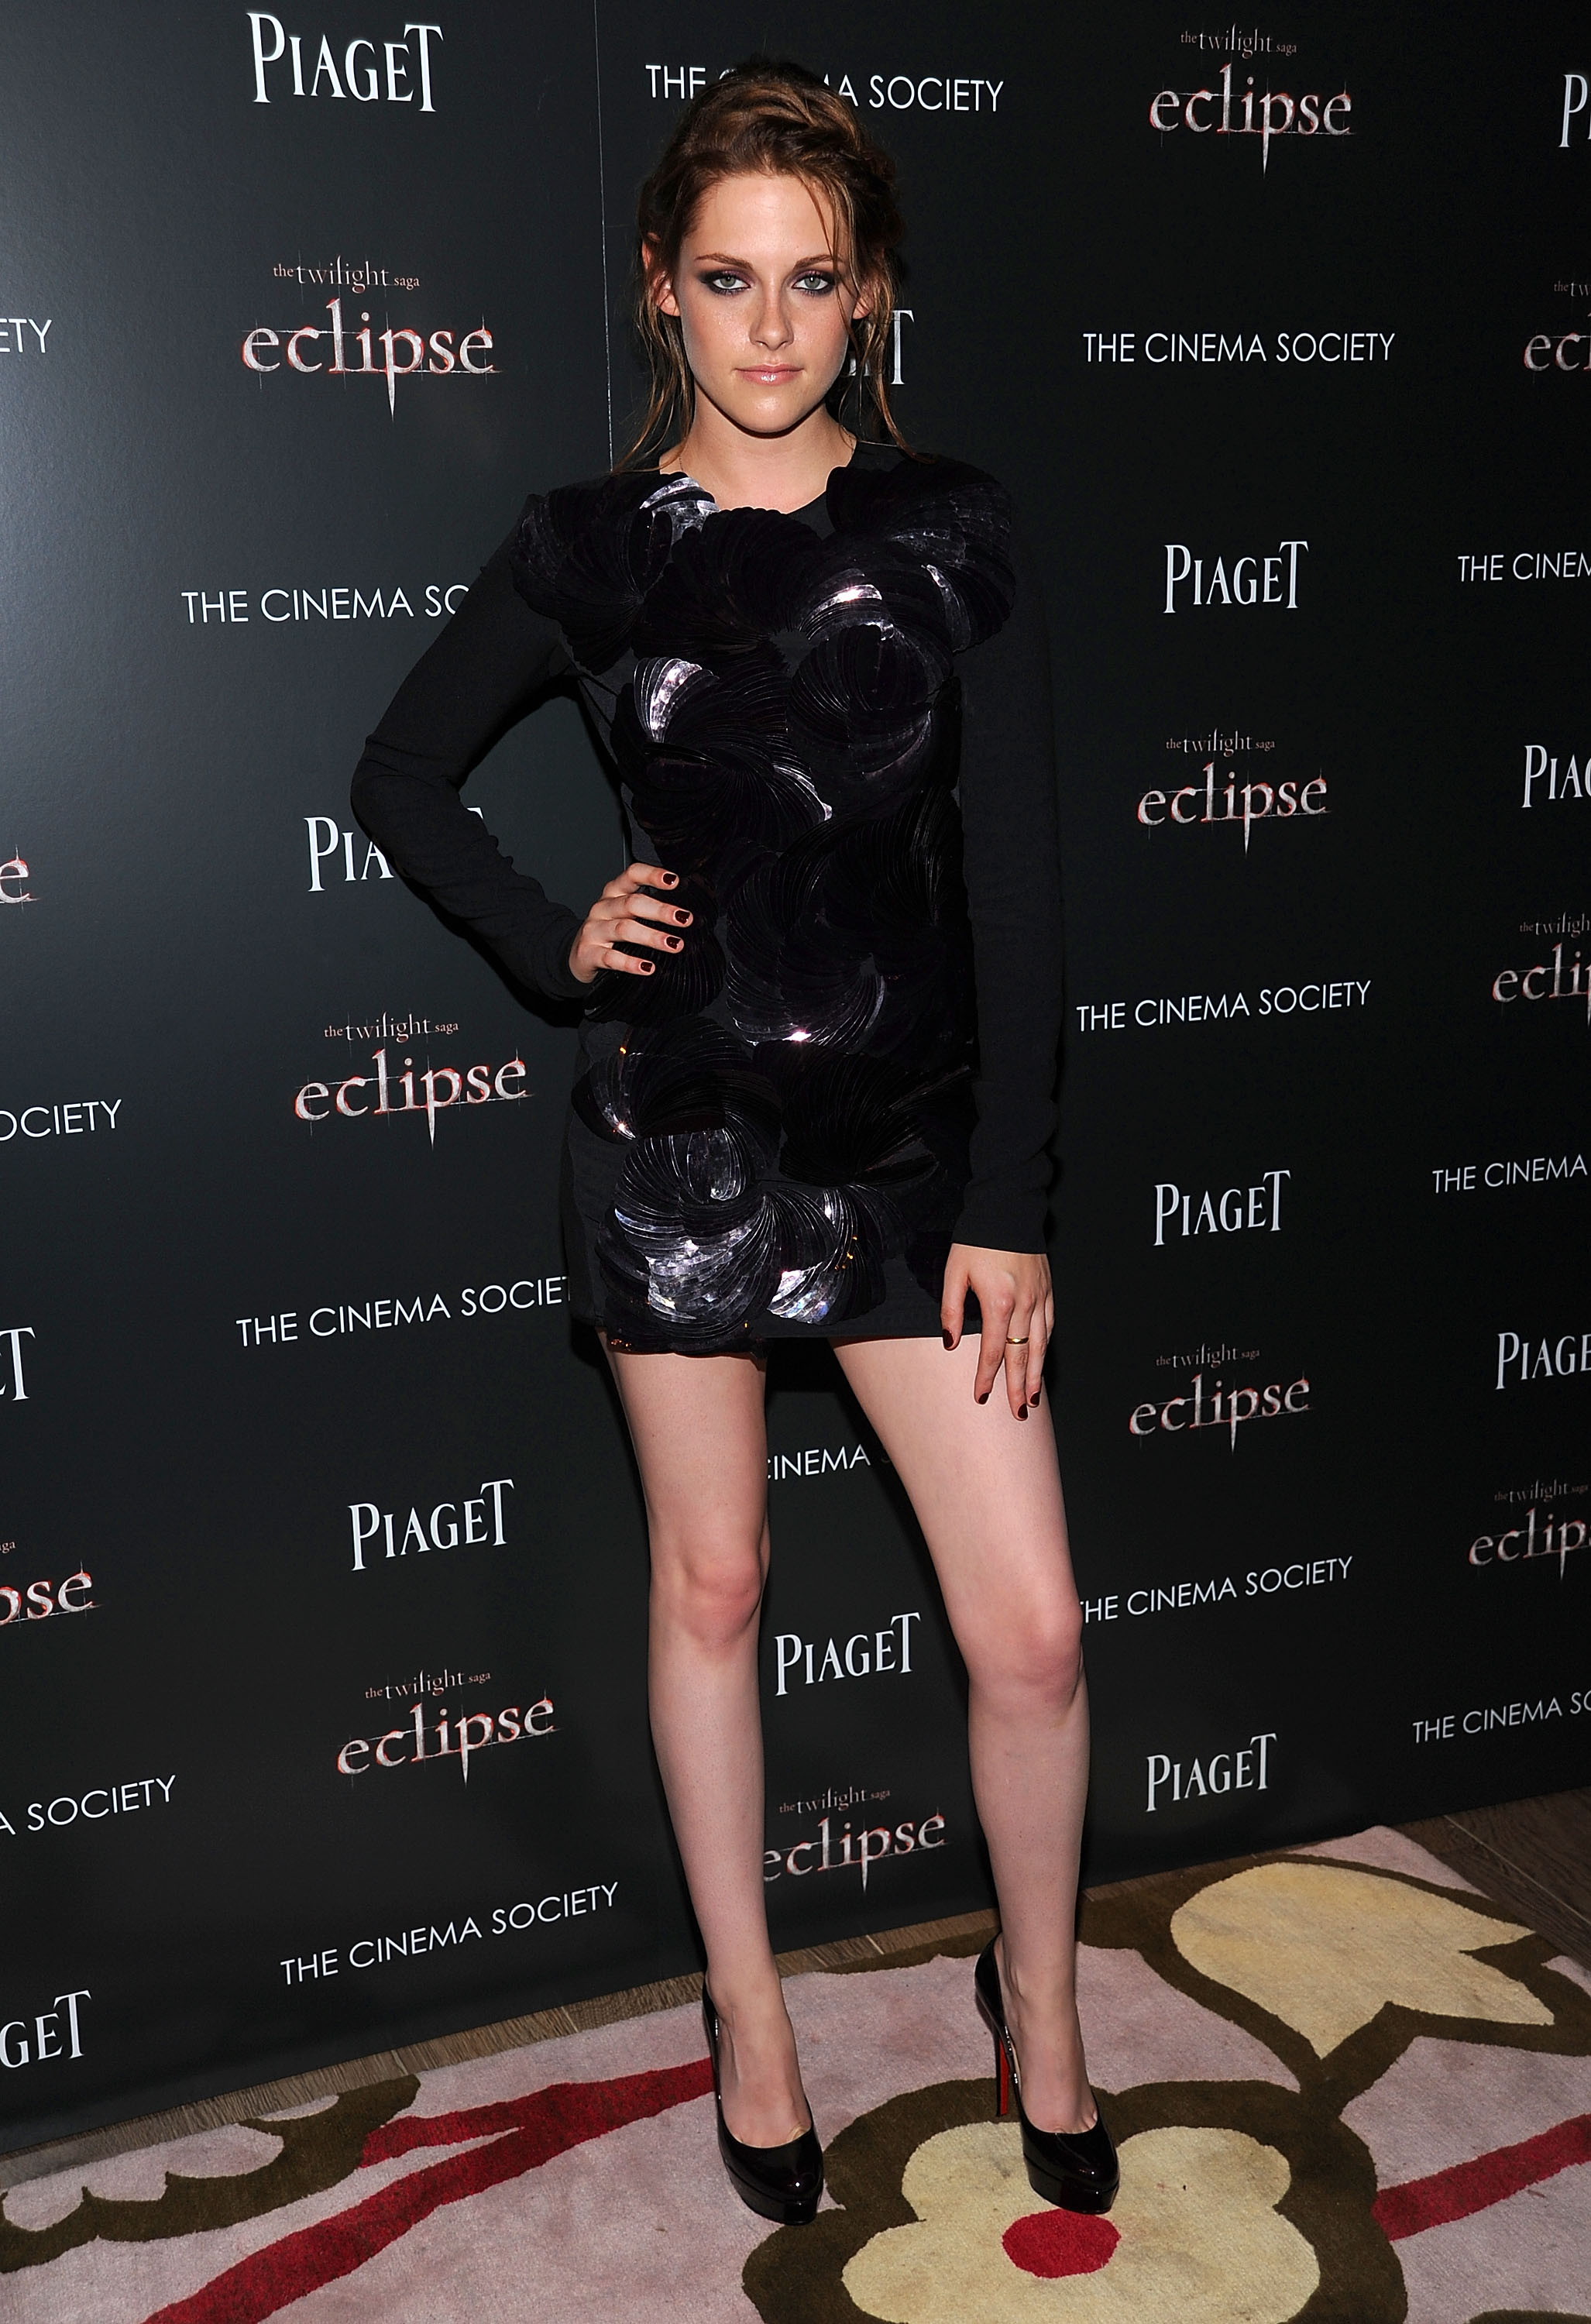 Kristen Stewart struck a sexy pose and debuted lighter hair at an early screening of Eclipse in June 2010 in NYC.